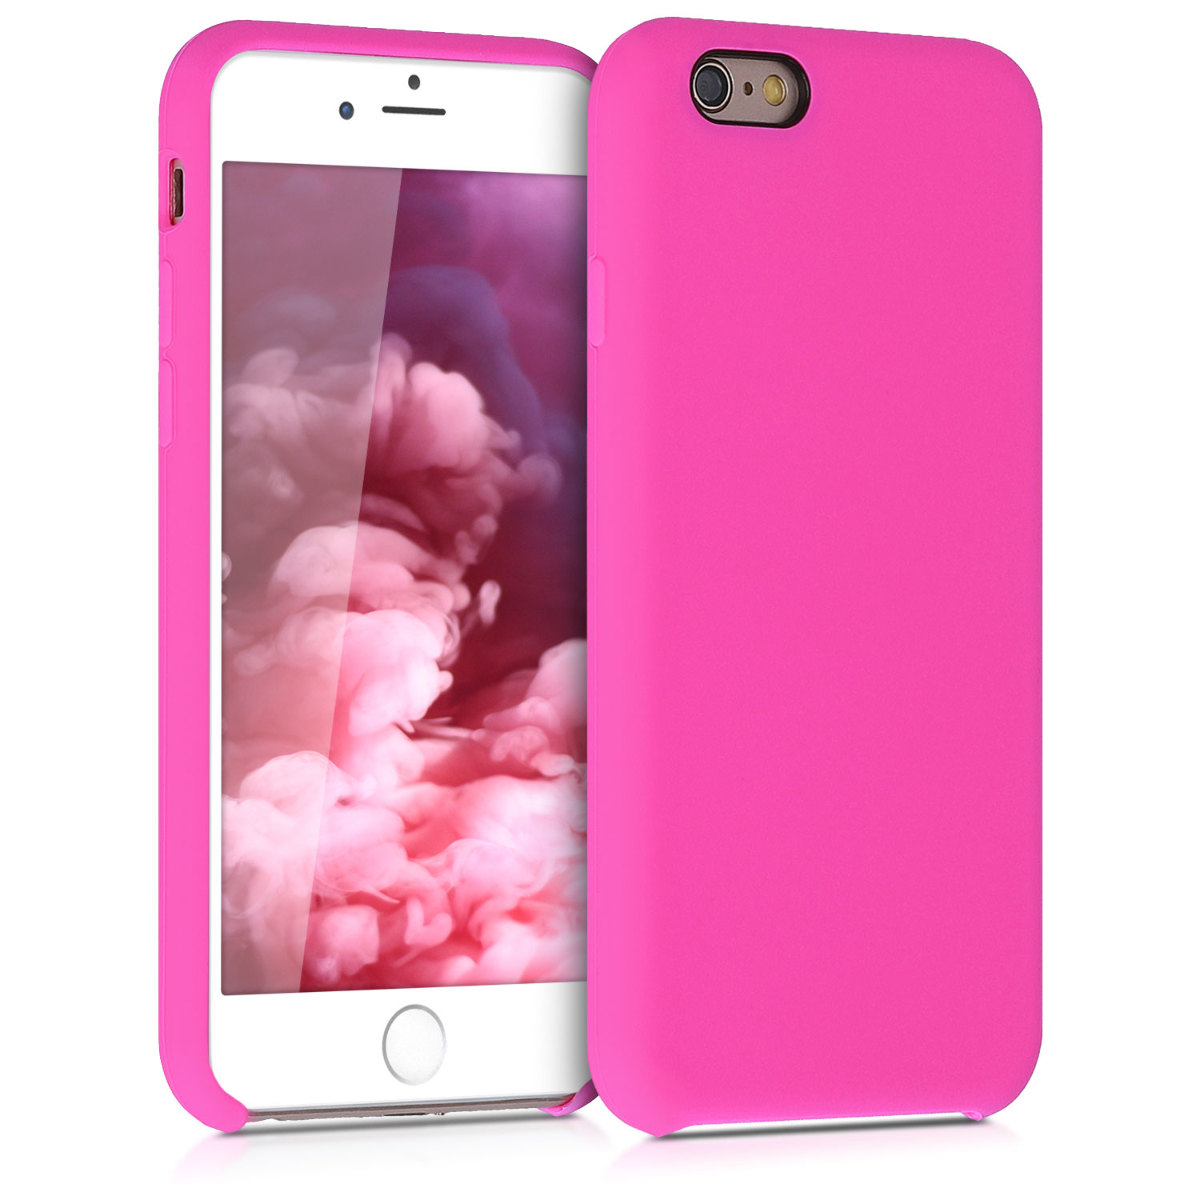 KW Θήκη Σιλικόνης iPhone 6 / 6S - Soft Flexible Rubber Protective Cover - Magenta - (40223.135)